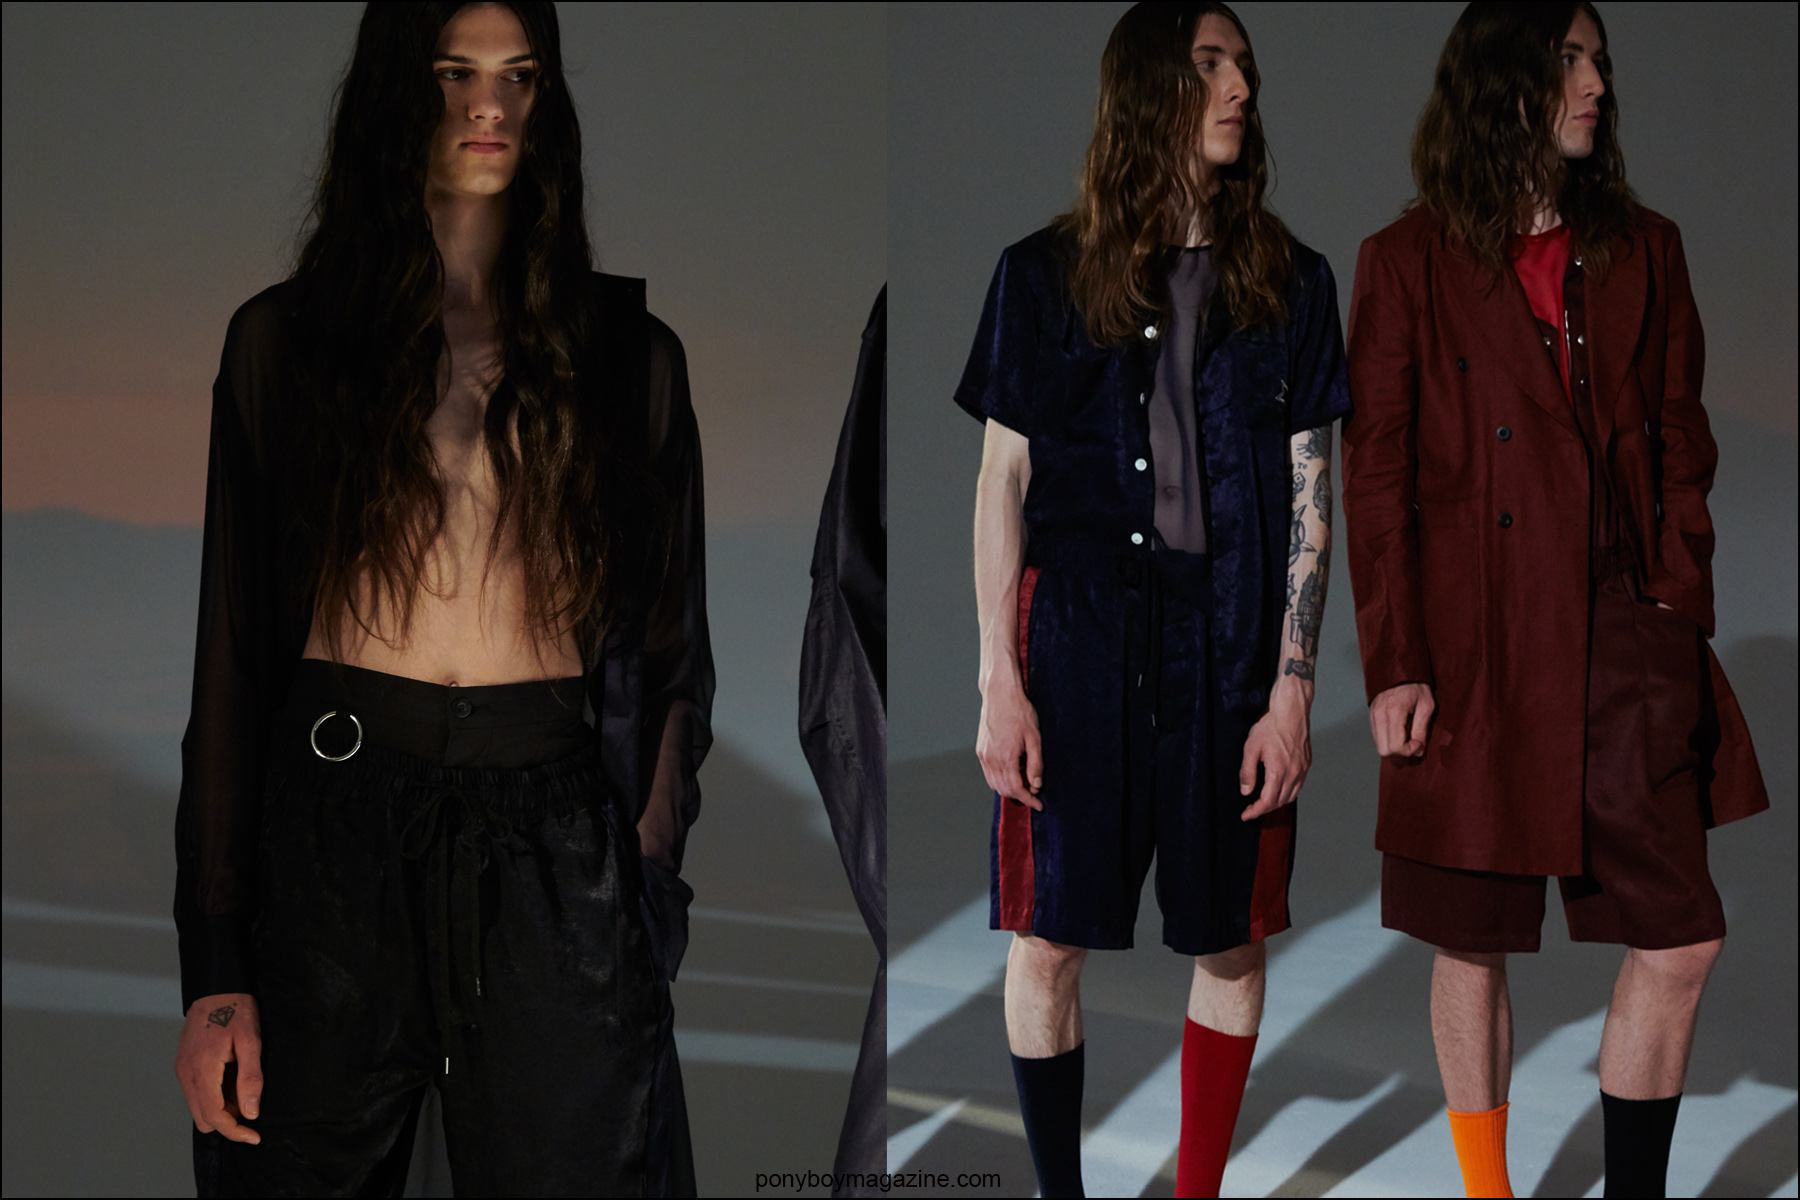 Long haired male models photographed by Alexander Thompson for Ponyboy magazine, at the Fingers Crossed S/S 2016 menswear collection at Industria Studios.